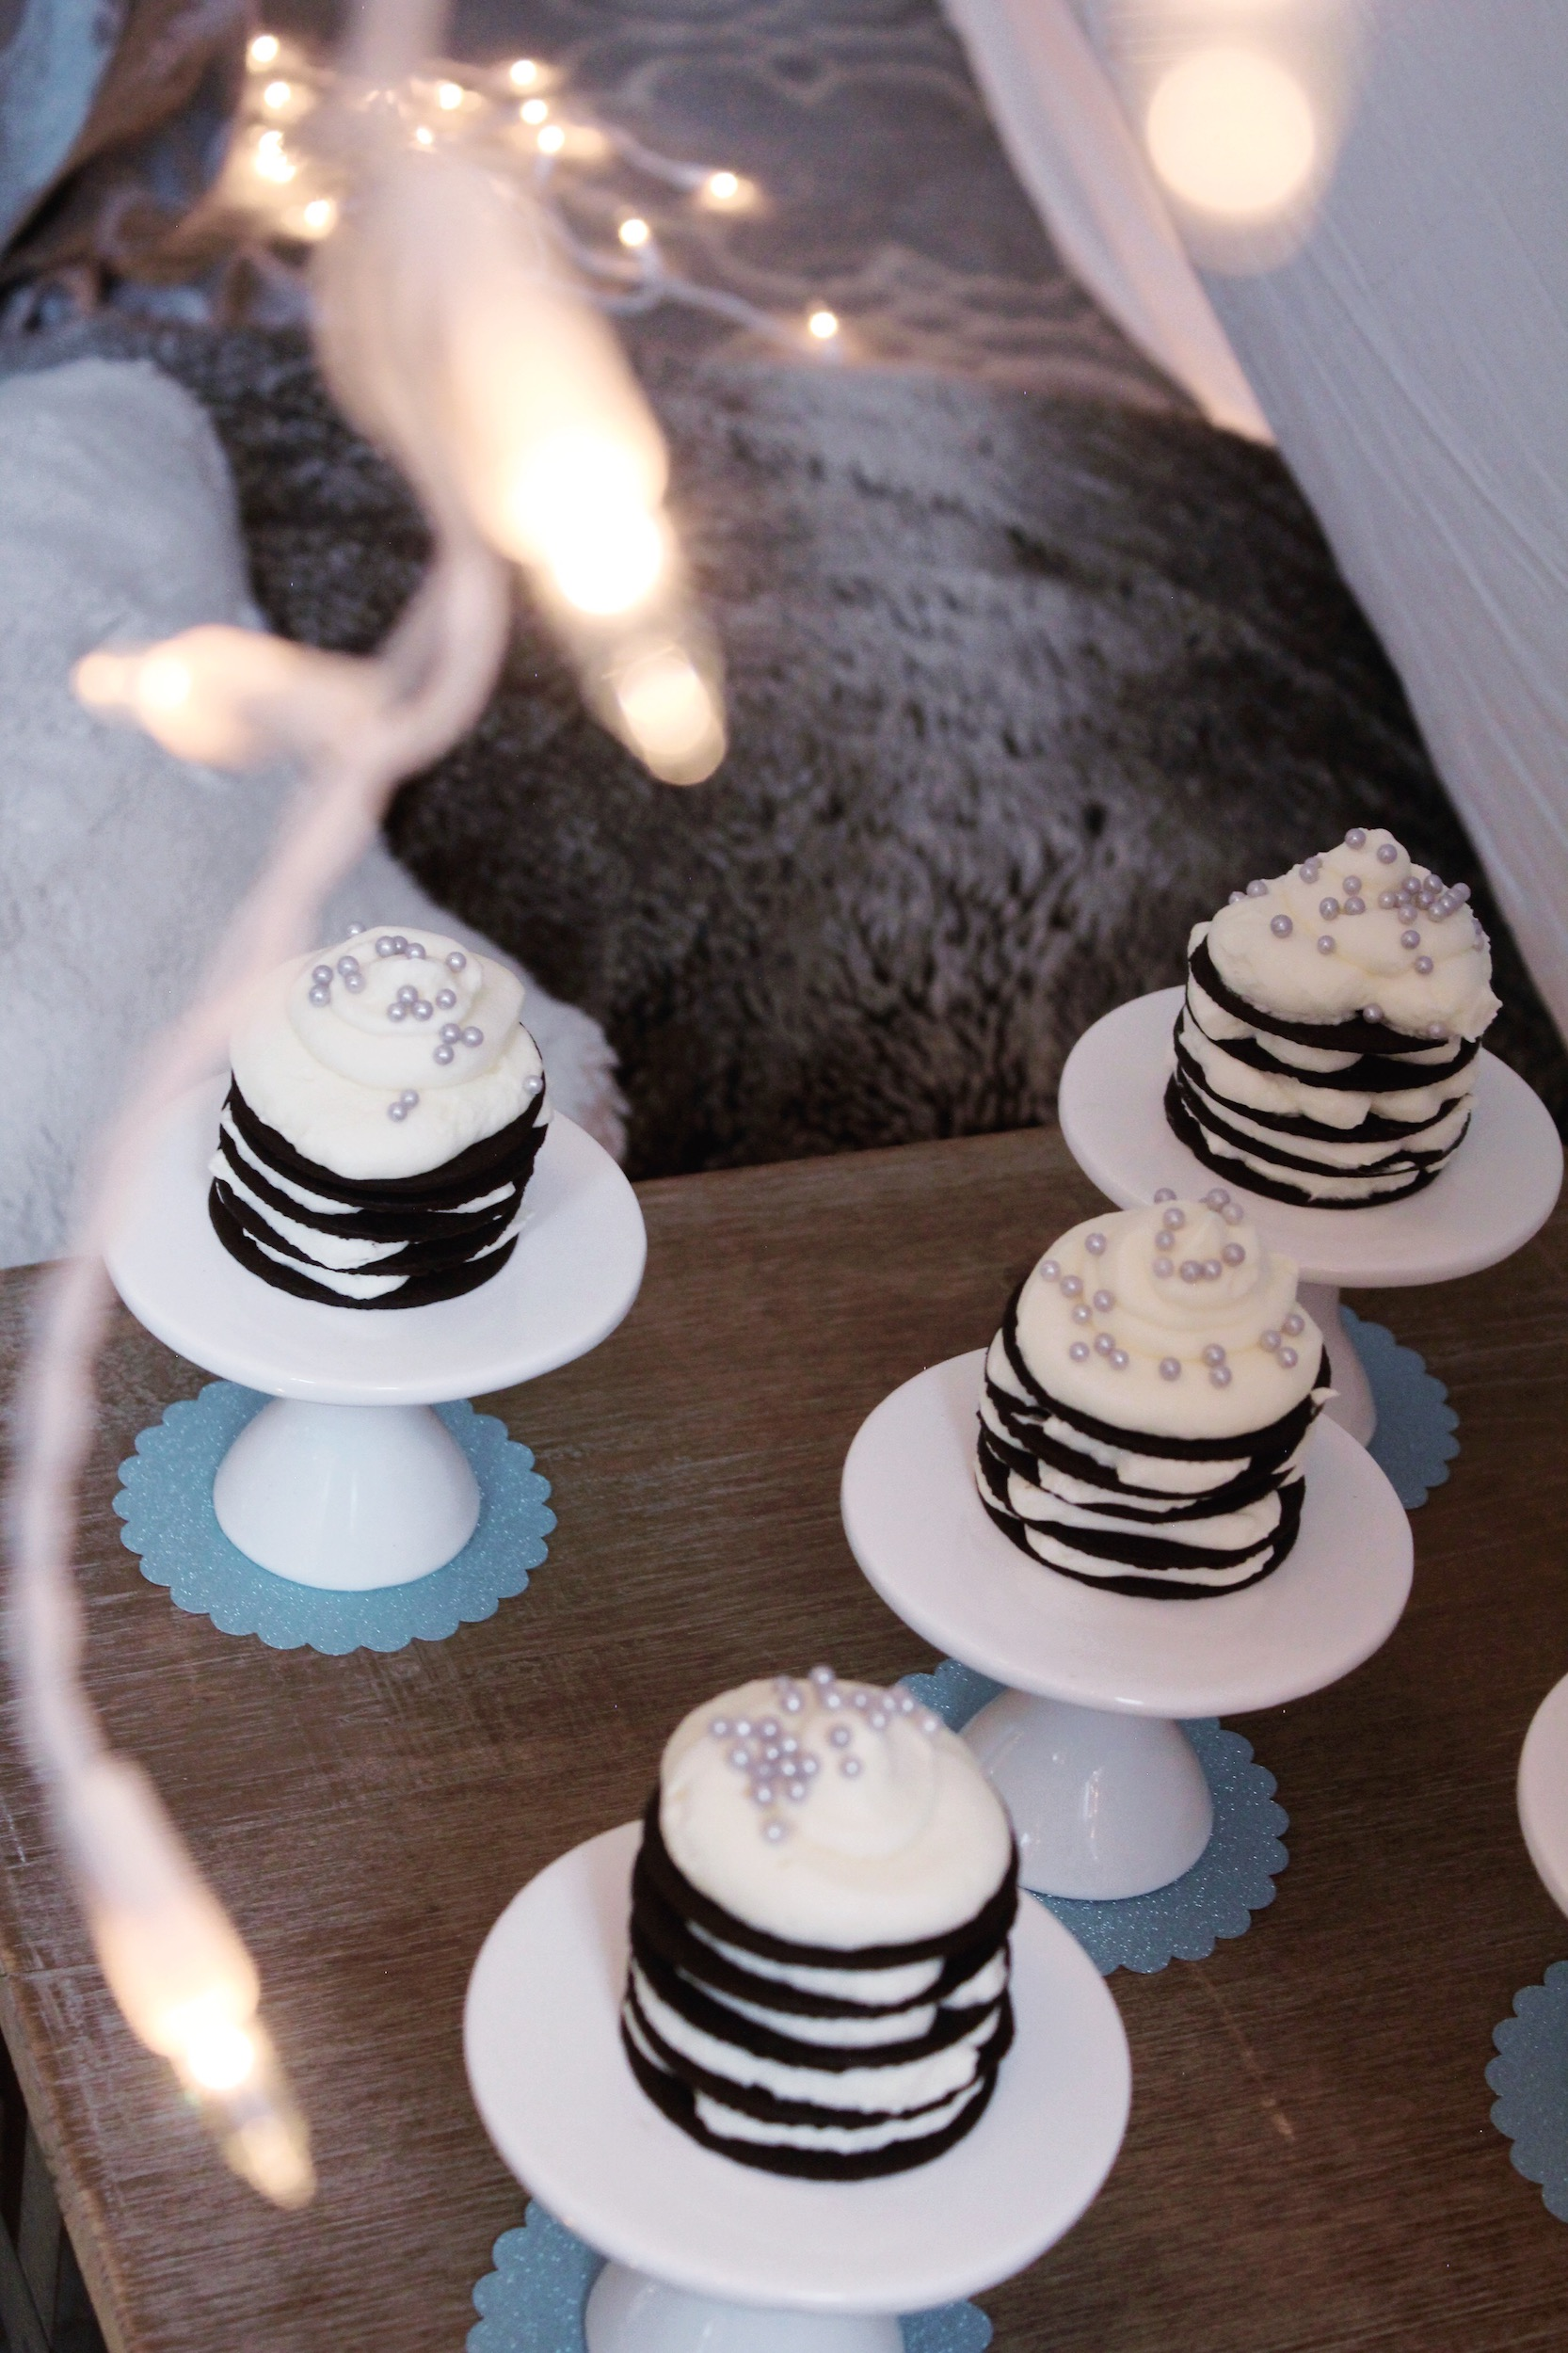 Black White Desserts_New Year's Eve_Cookie Roll Lights_Design Organize Party.JPG